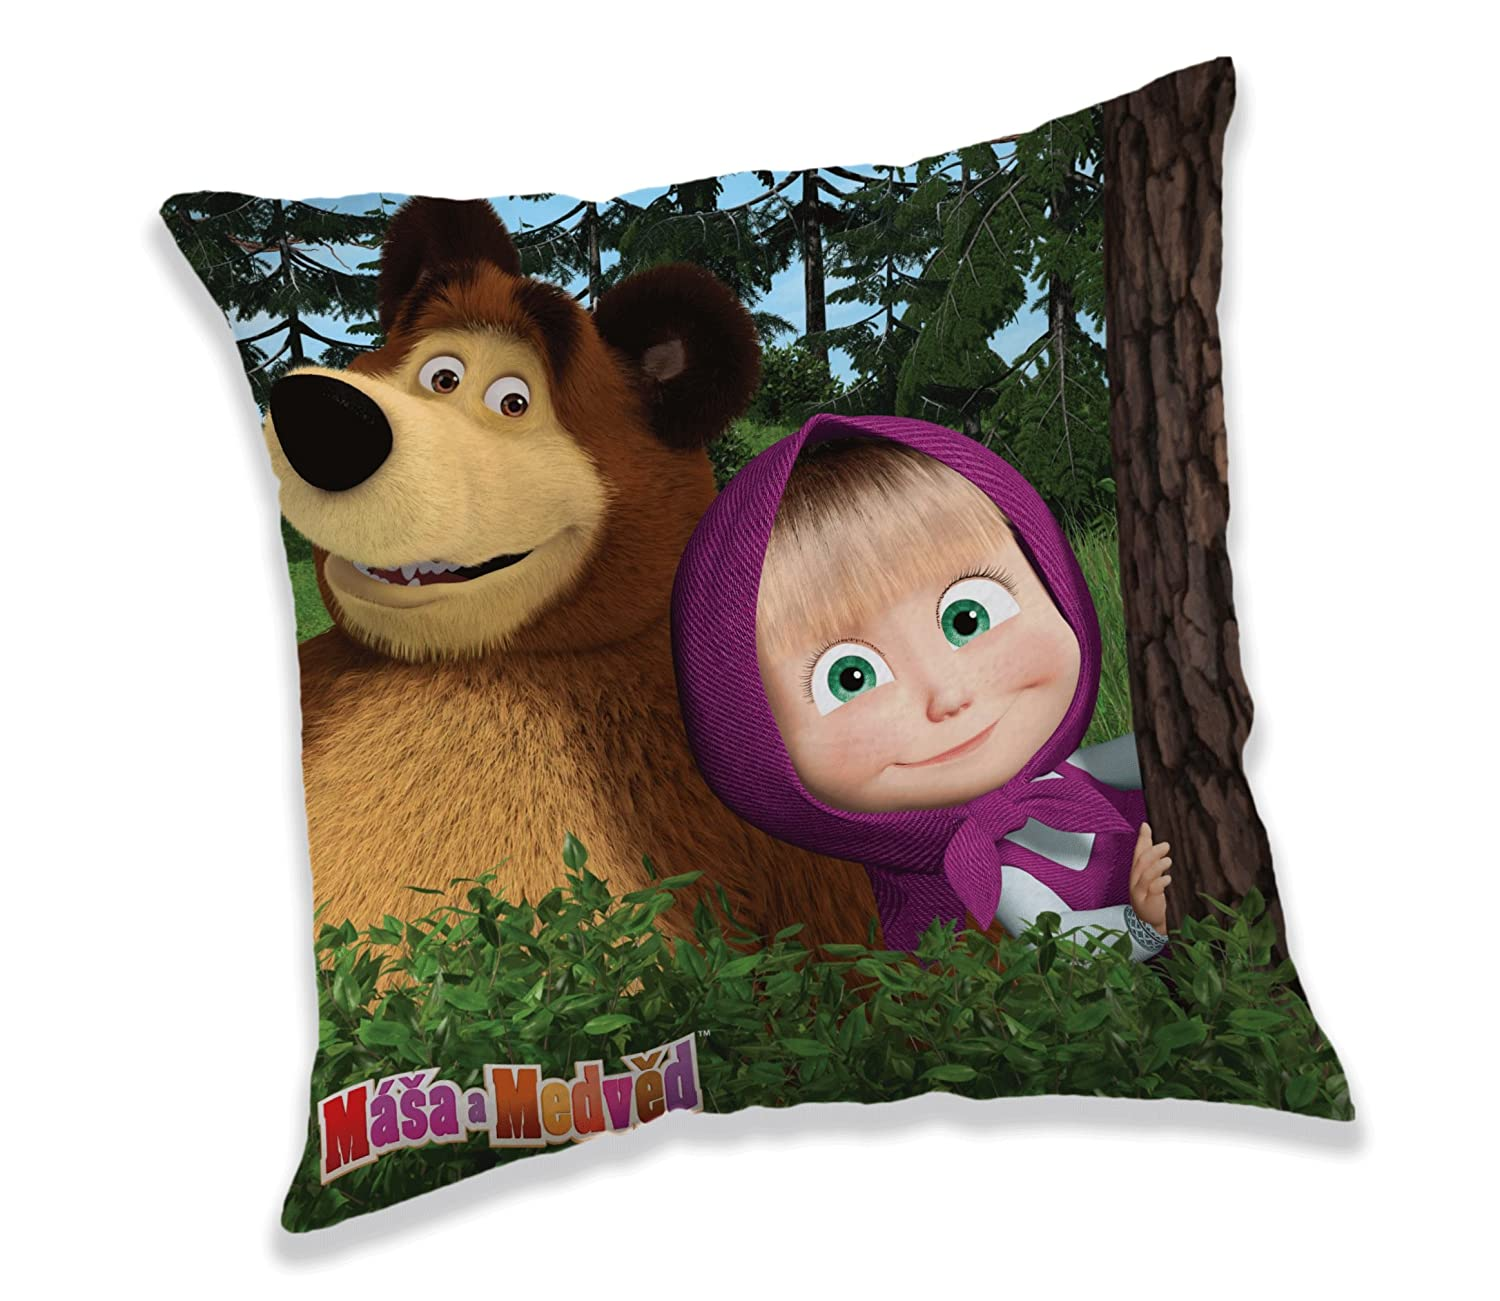 Jerry Fabrics Masha and Bear Character Cushion Decorative Throw Pillows for Kids, Polyester, Multi-Colour, 40 x 40 x 5 cm JERRY FABRICS s.r.o. 17CS287